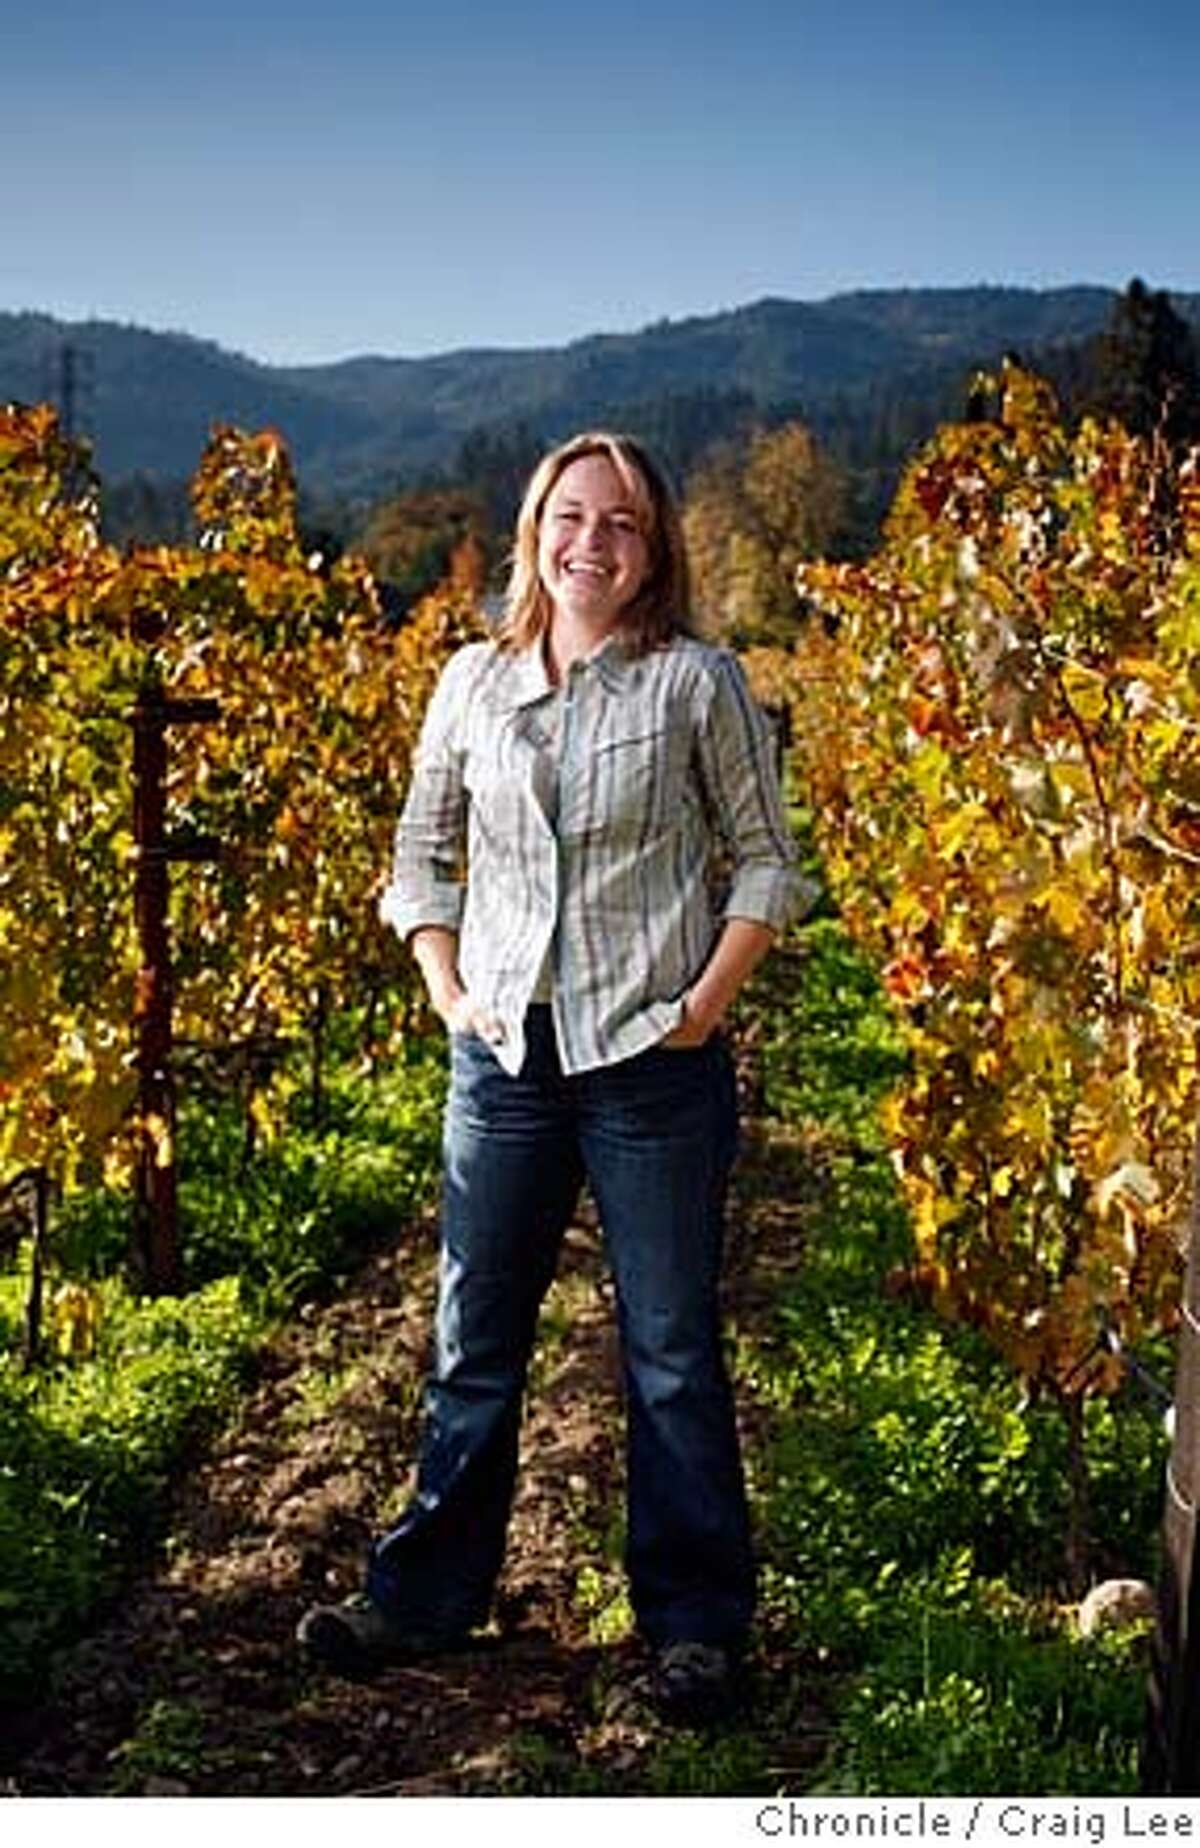 WINEMAKER07_575_cl.JPG Photo for story on this year's Winemaker of the Year and the five Winemakers to Watch. This is Jennifer Williams of Spottswoode Estate Vineyard and Winery in St. Helena. Jennifer is a Winemaker to Watch. on 11/27/07 in St. Helena. photo by Craig Lee / The Chronicle MANDATORY CREDIT FOR PHOTOG AND SF CHRONICLE/NO SALES-MAGS OUT